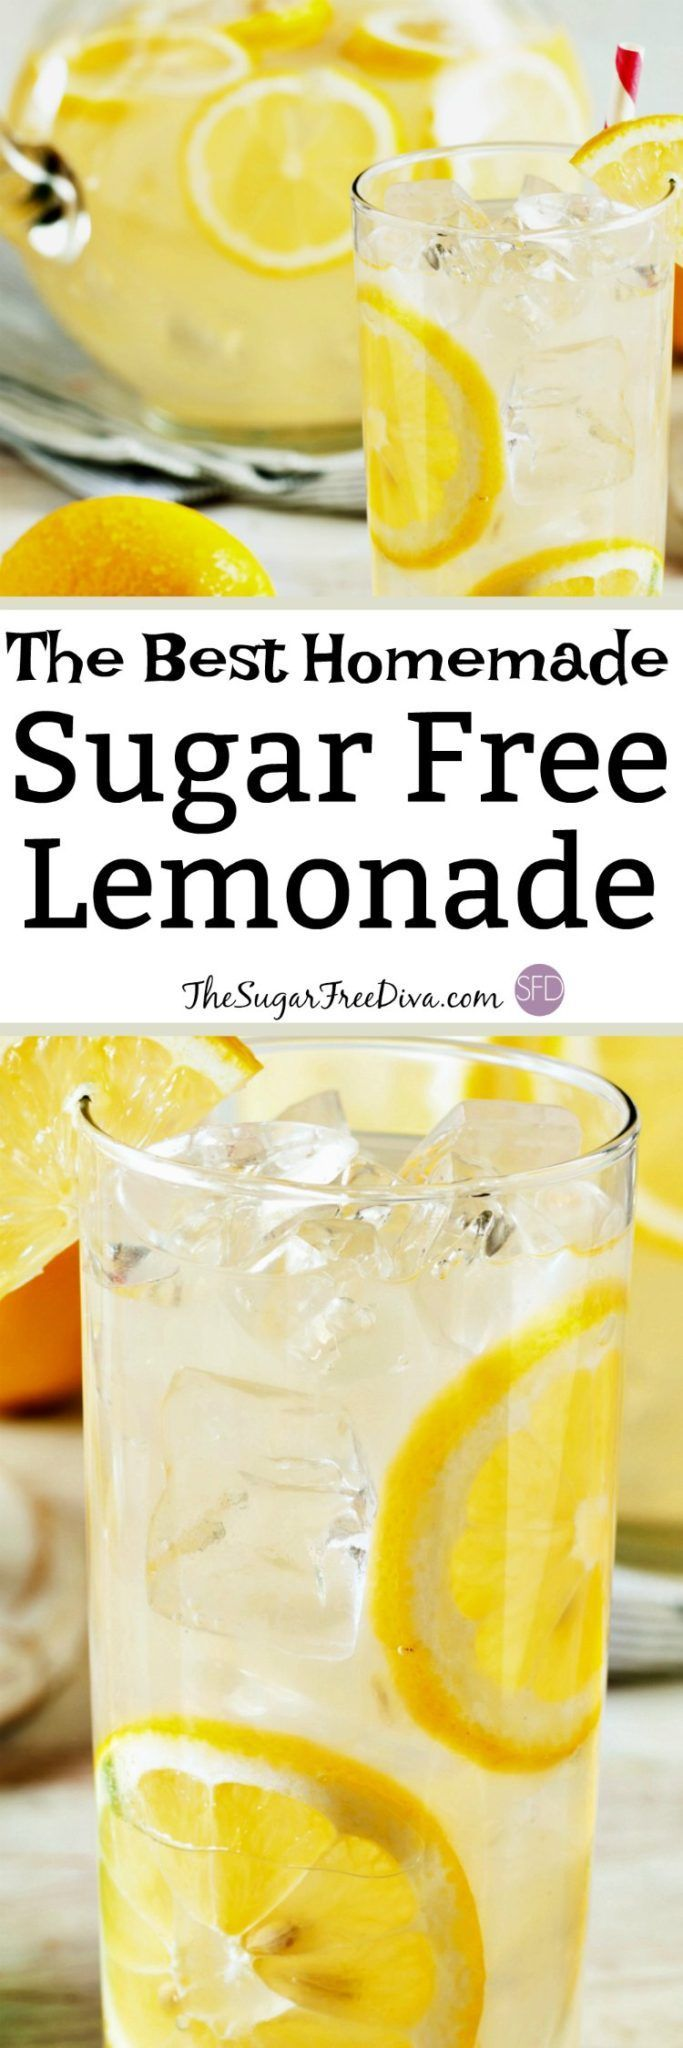 This is the recipe for The Best Sugar Free Homemade Lemonade #homemadelemonaderecipes